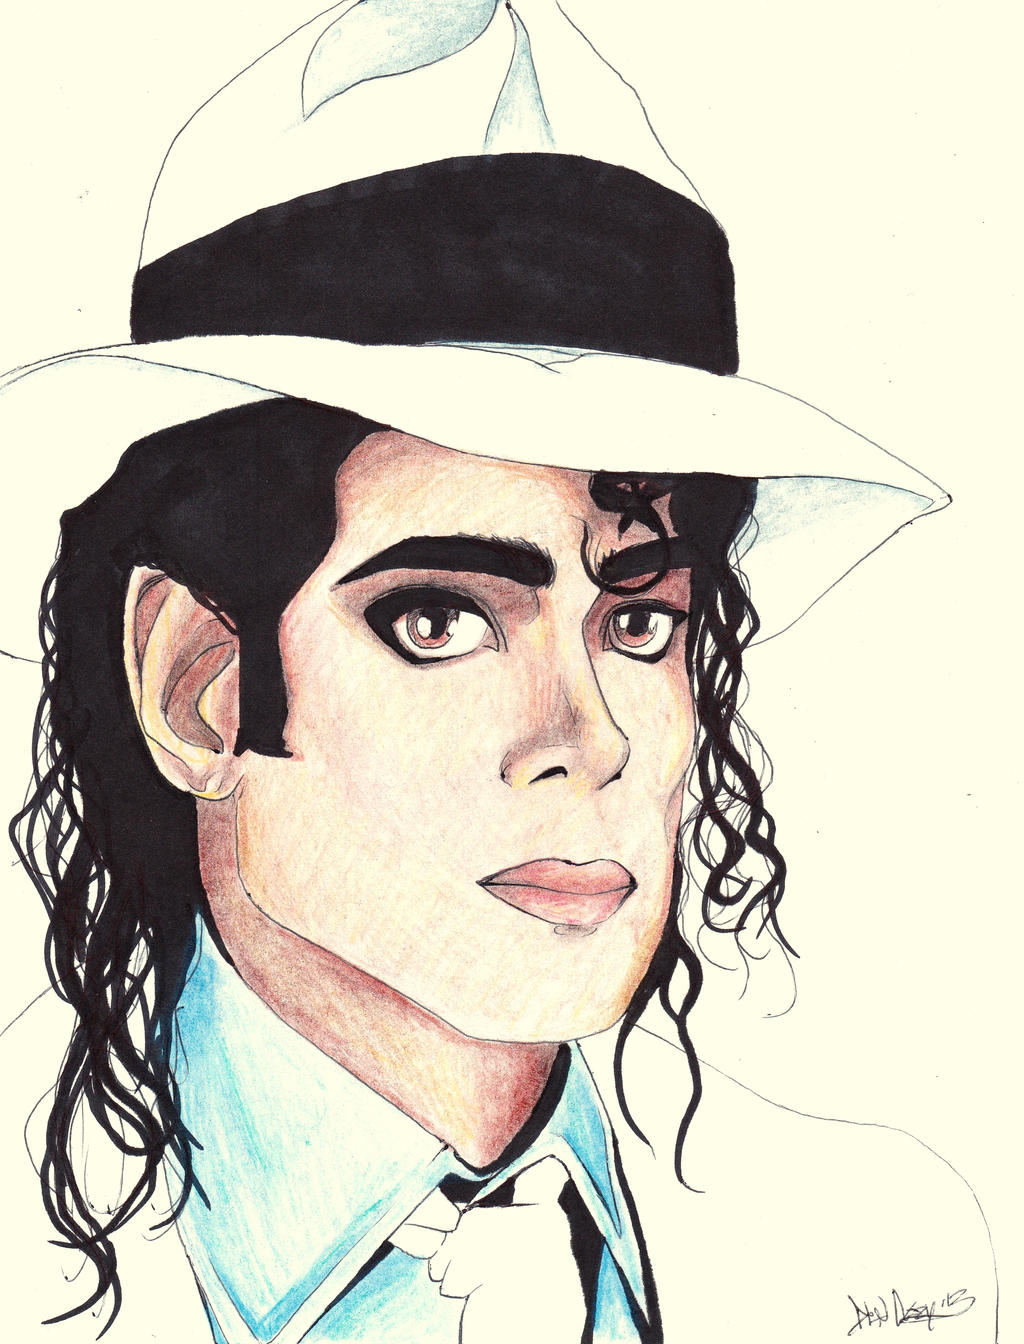 michael jackson sketch smooth - photo #29